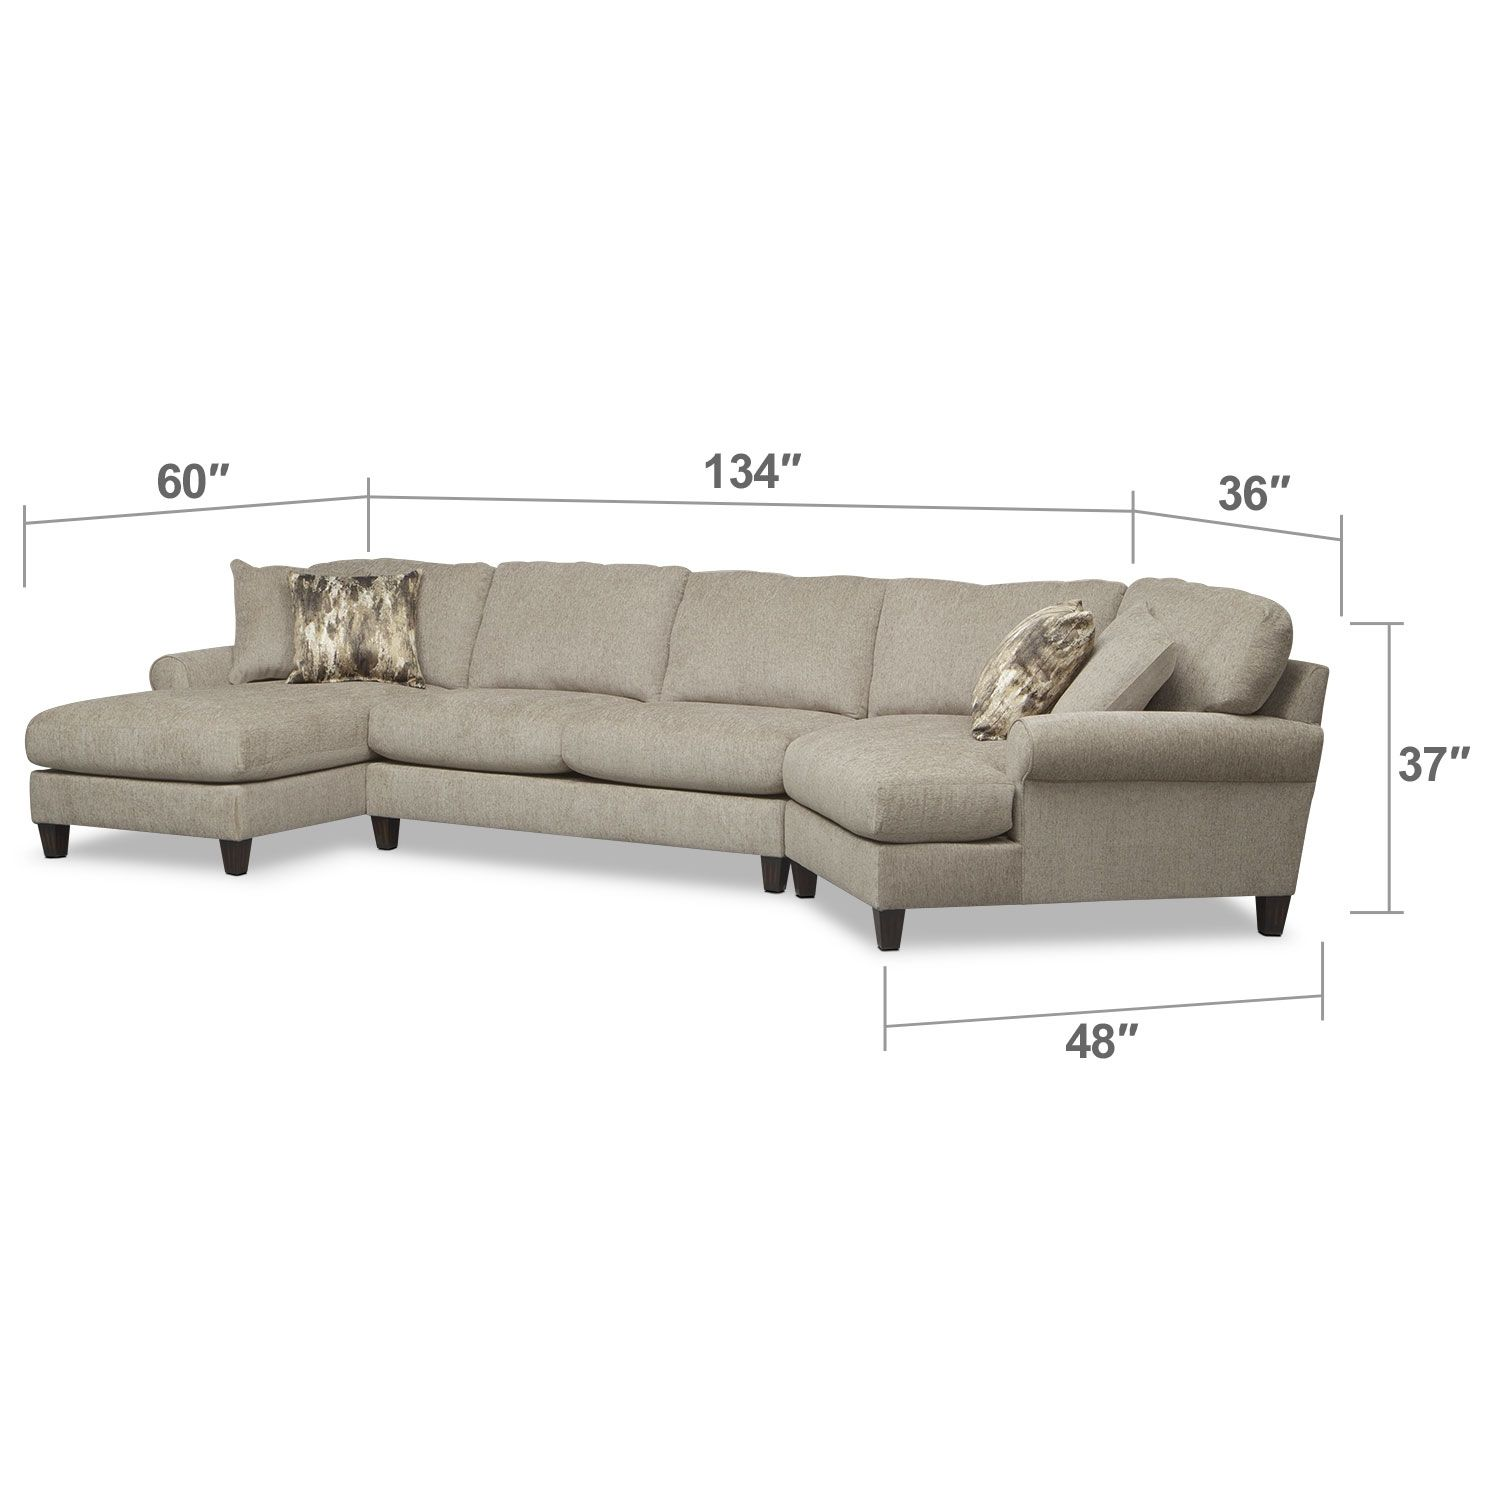 Living Room Furniture Karma 3 Piece Sectional with Right Facing